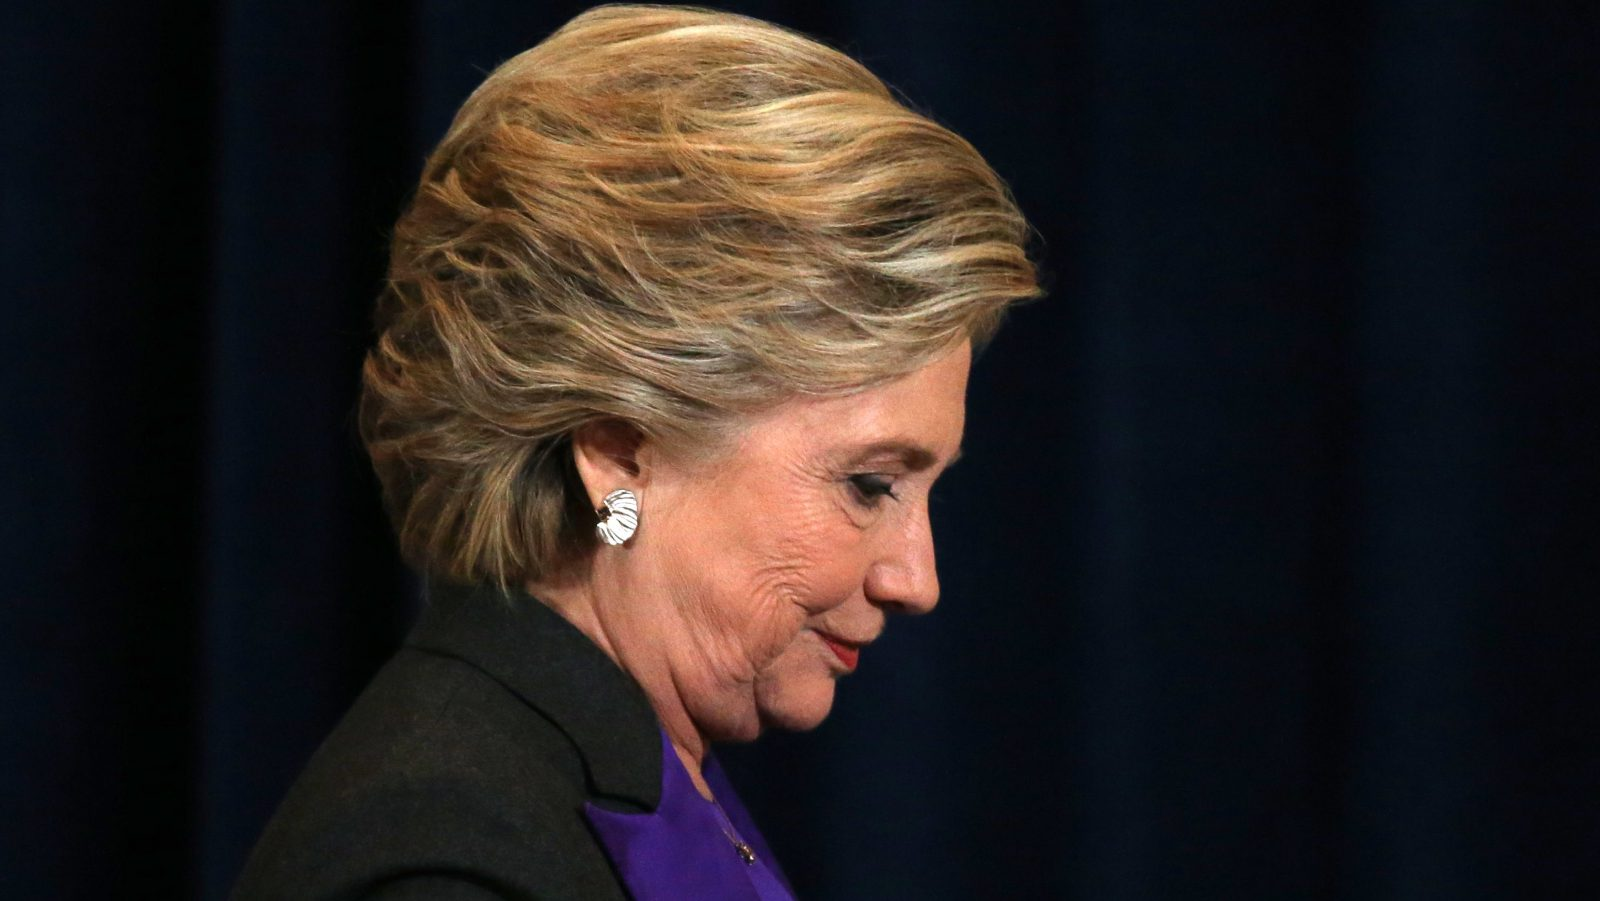 Hillary Clinton attends an event where she addressed her staff and supporters about the results of the U.S. election at a hotel in the Manhattan borough of New York, U.S., November 9, 2016.    REUTERS/Carlos Barria  - RTX2SVA9